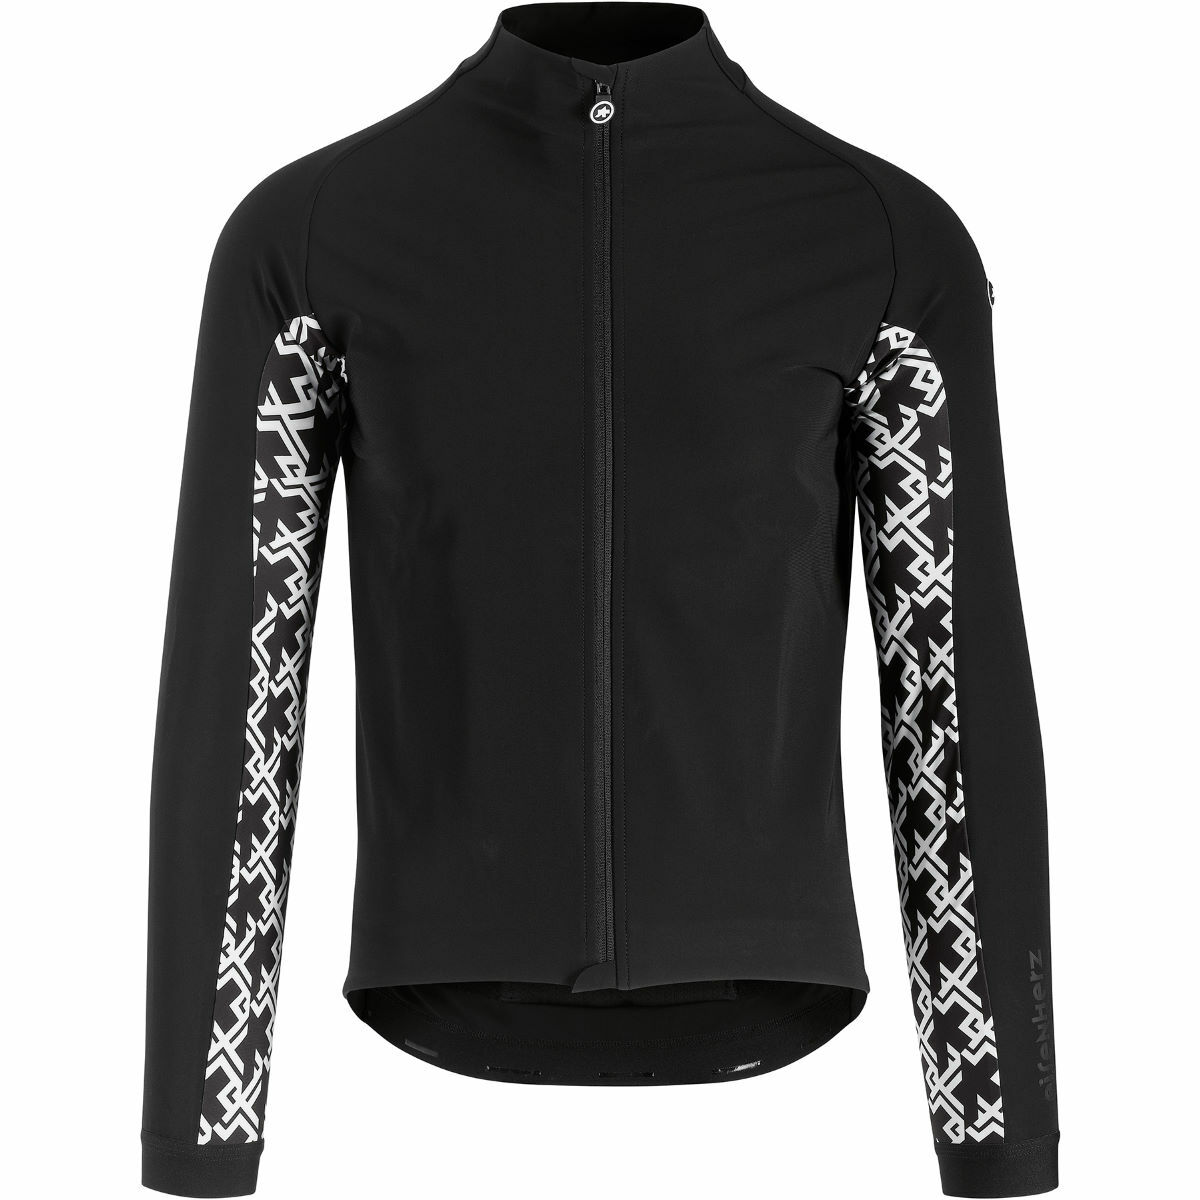 Assos MILLE GT Jacket ULTRAZ Winter Jacket - Reduced Price for Black only.